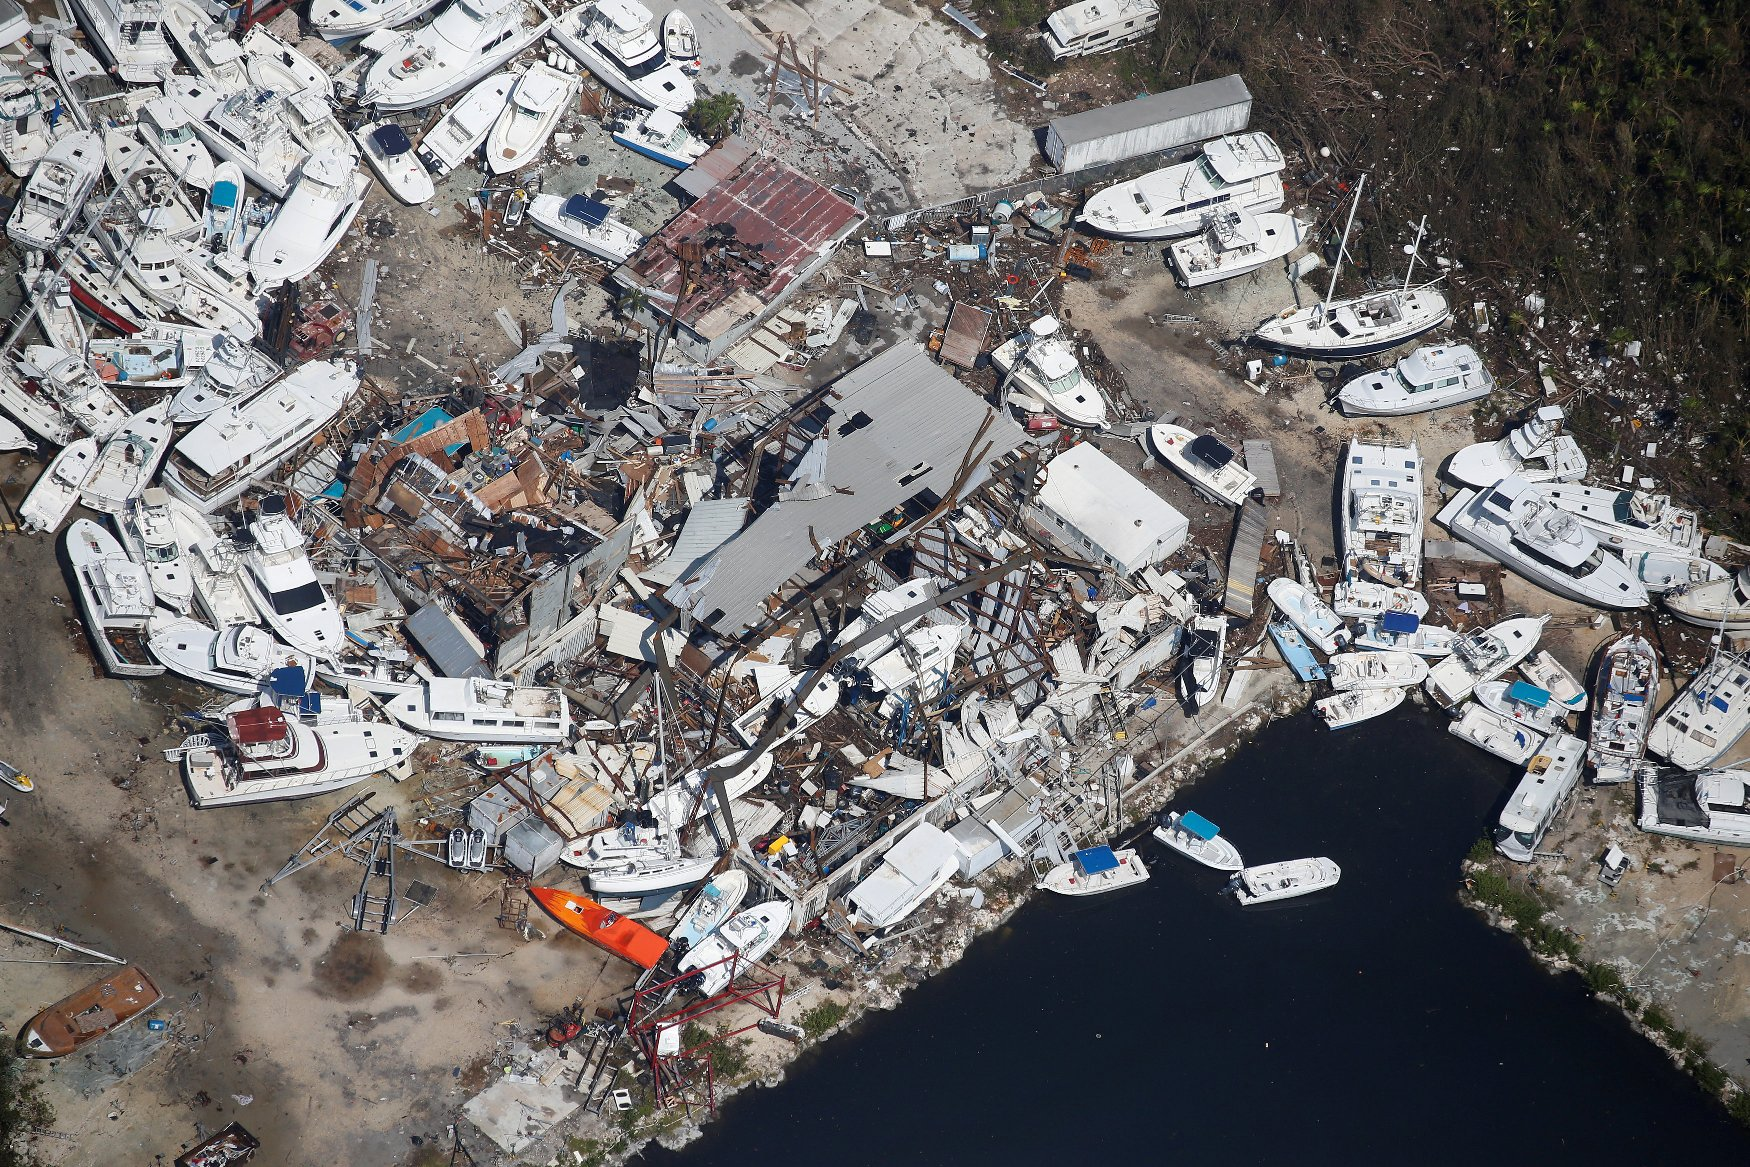 A destroyed marina is pictured in an aerial photo in the Keys in Marathon, Fla., on Sept. 13, 2017. (REUTERS/Carlo Allegri)